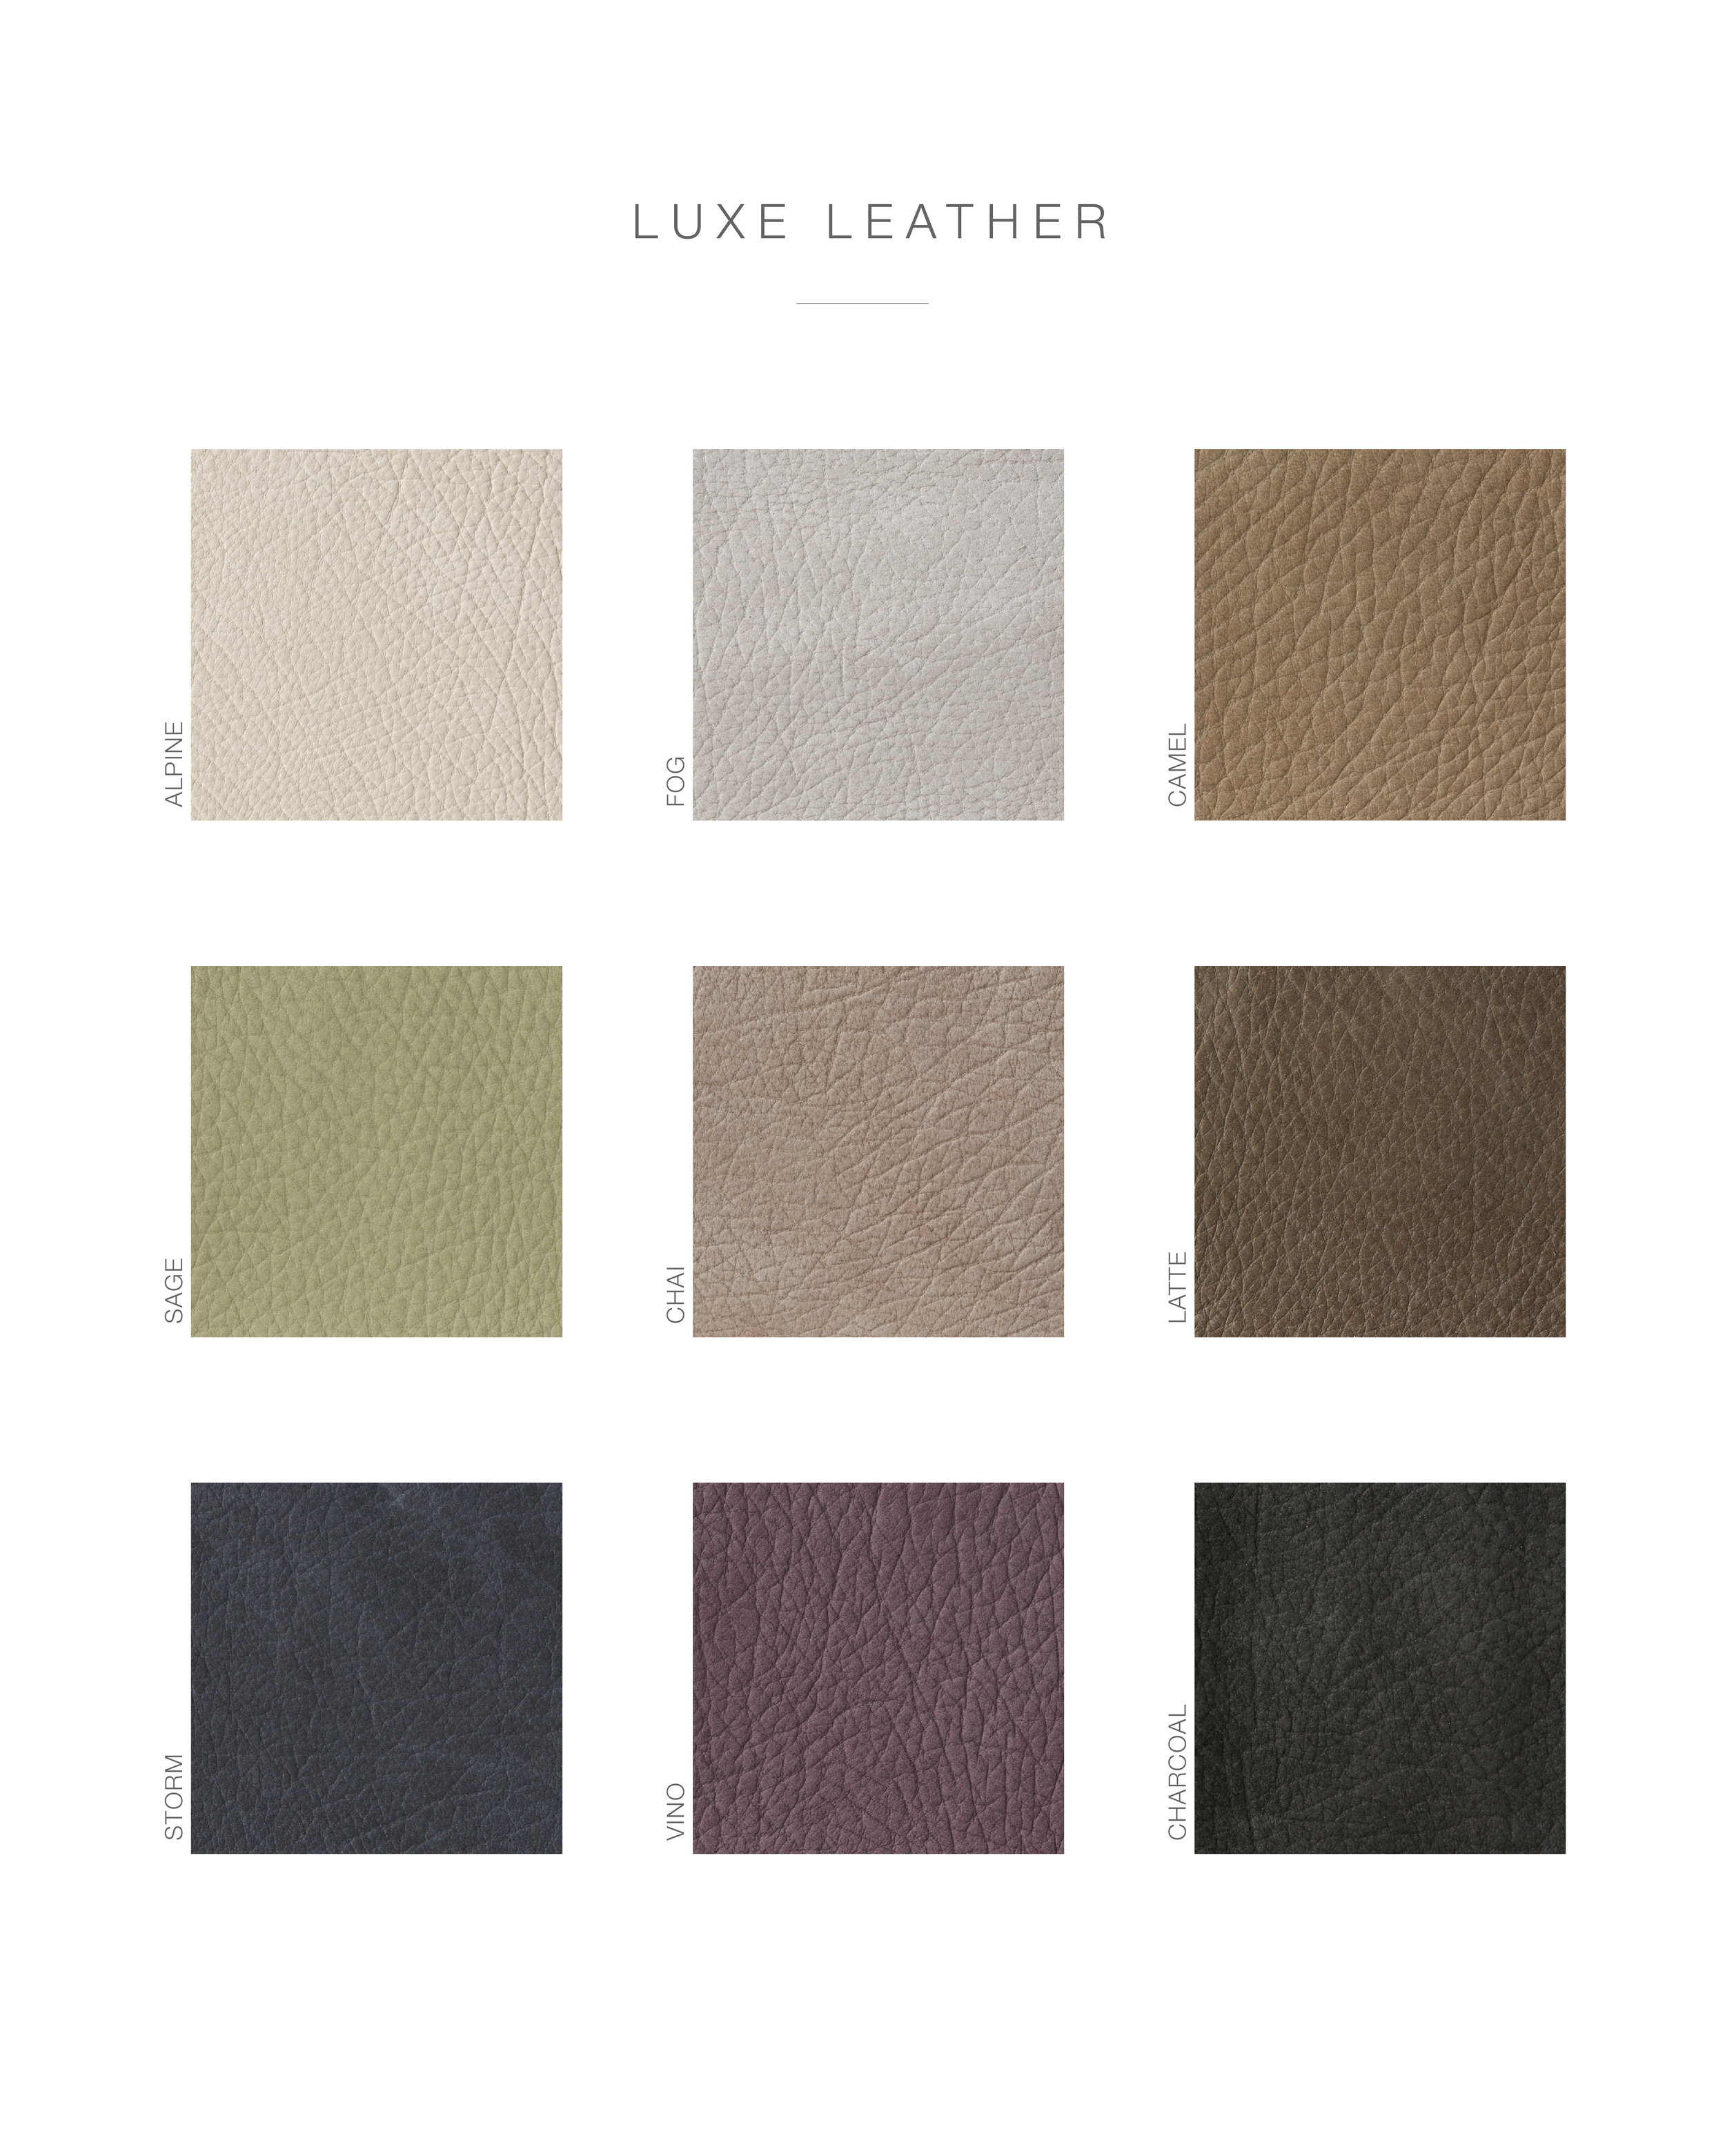 02_luxe_leather.jpg